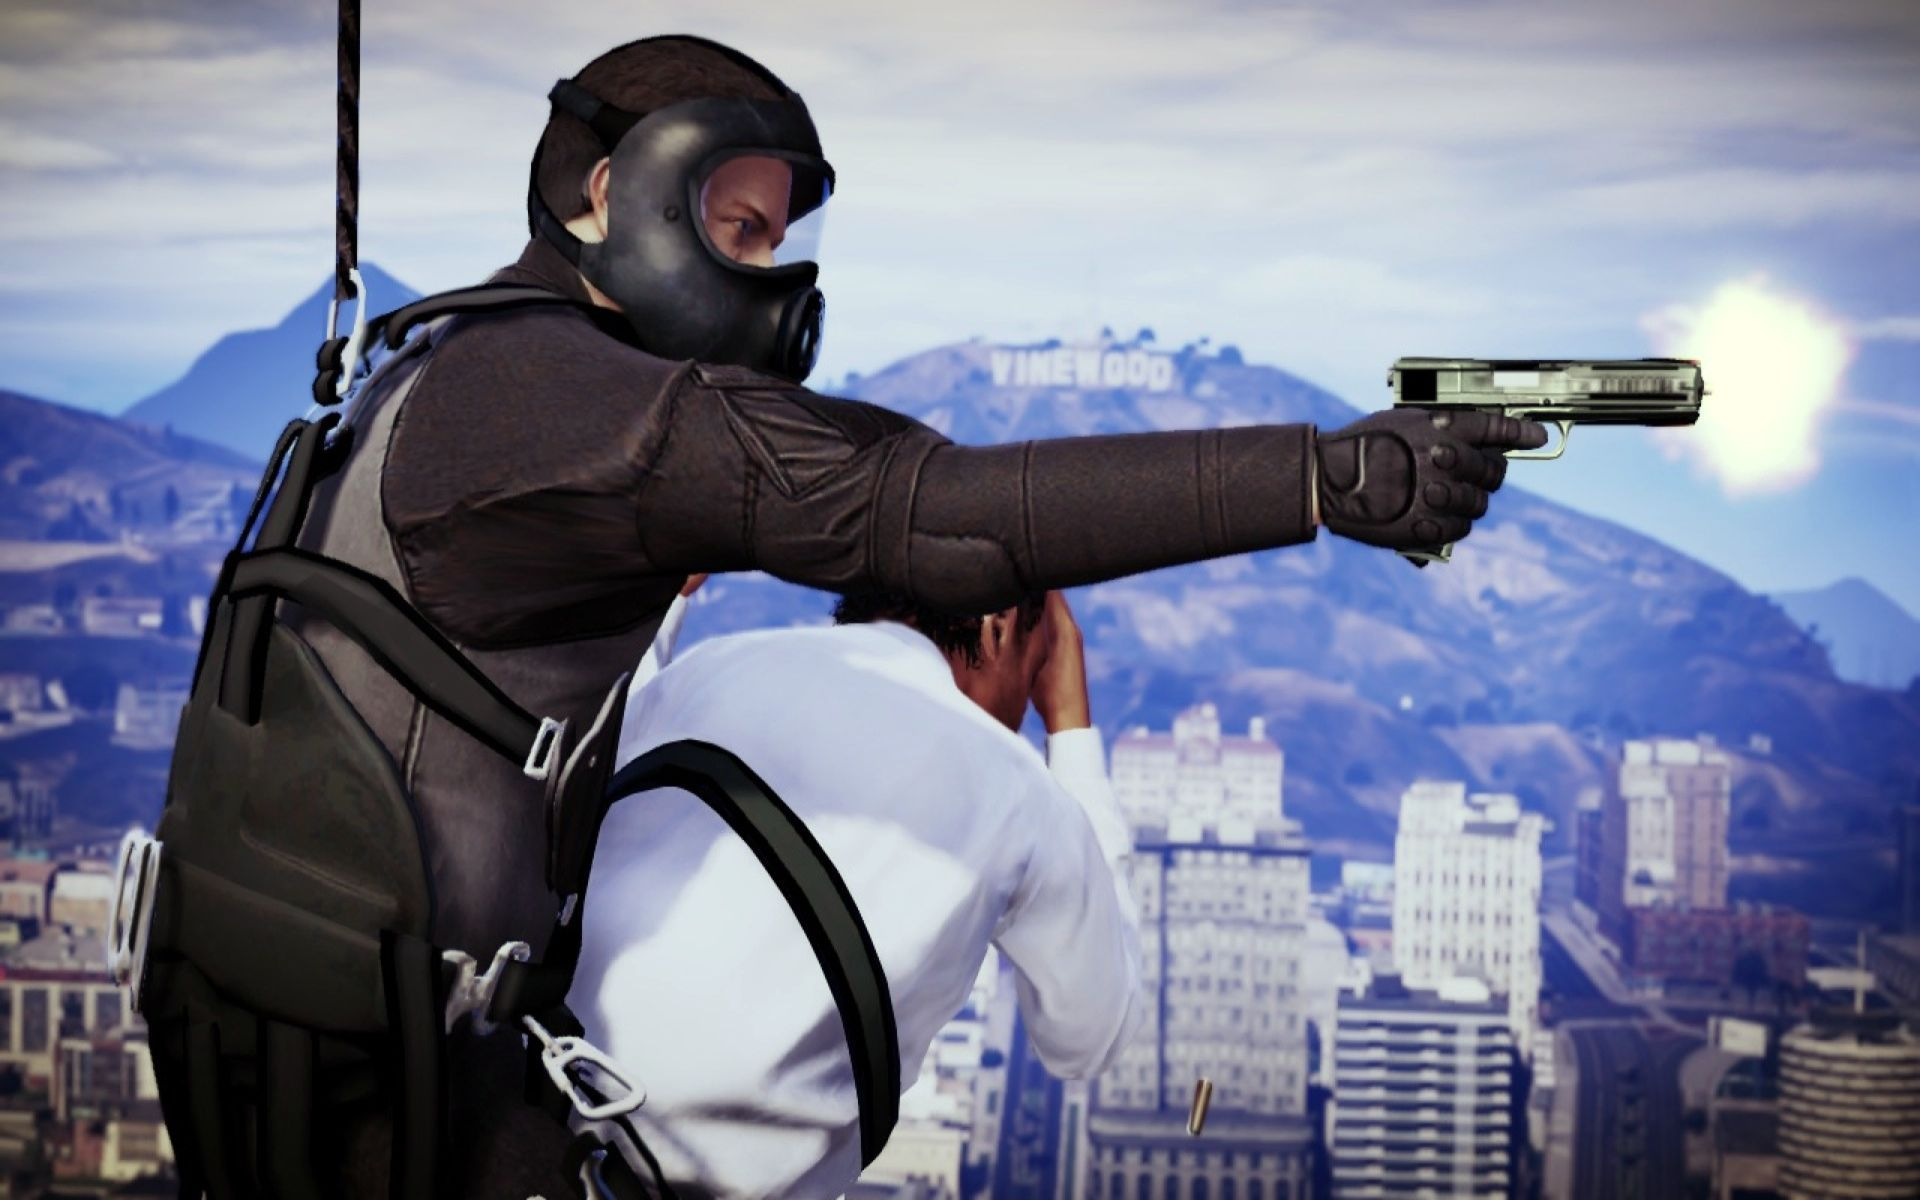 gta 5 GTA 5 Wallpaper HD1 600x375 GTA 5 Wallpaper HD